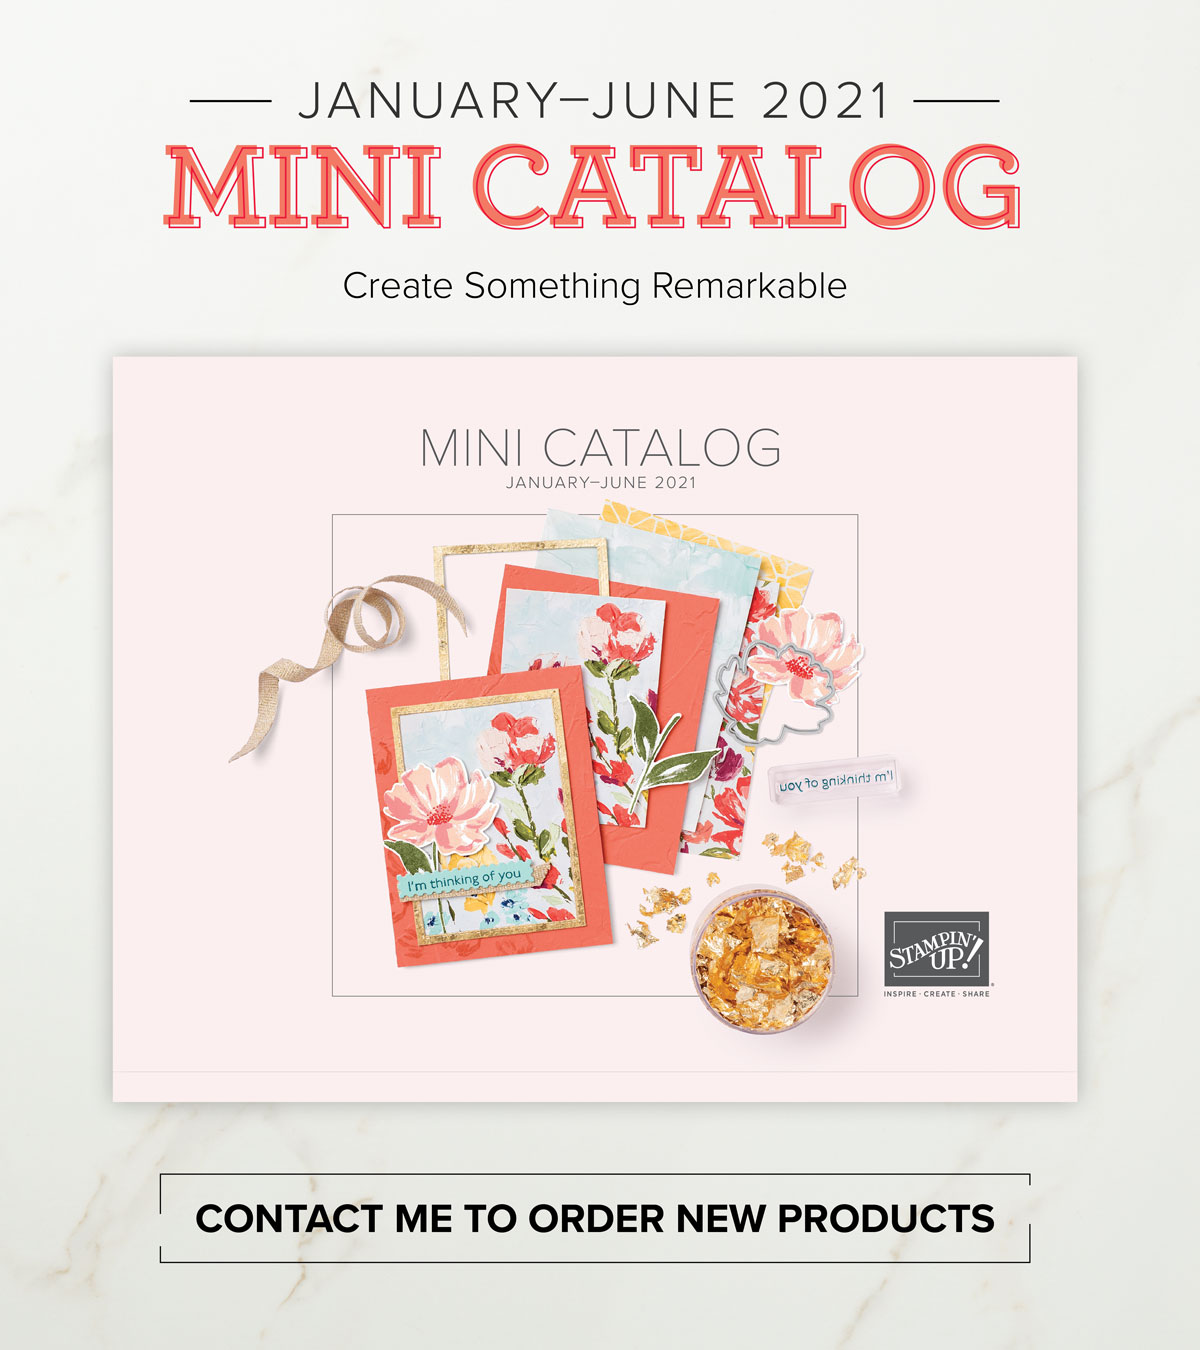 January - June Mini Catalog